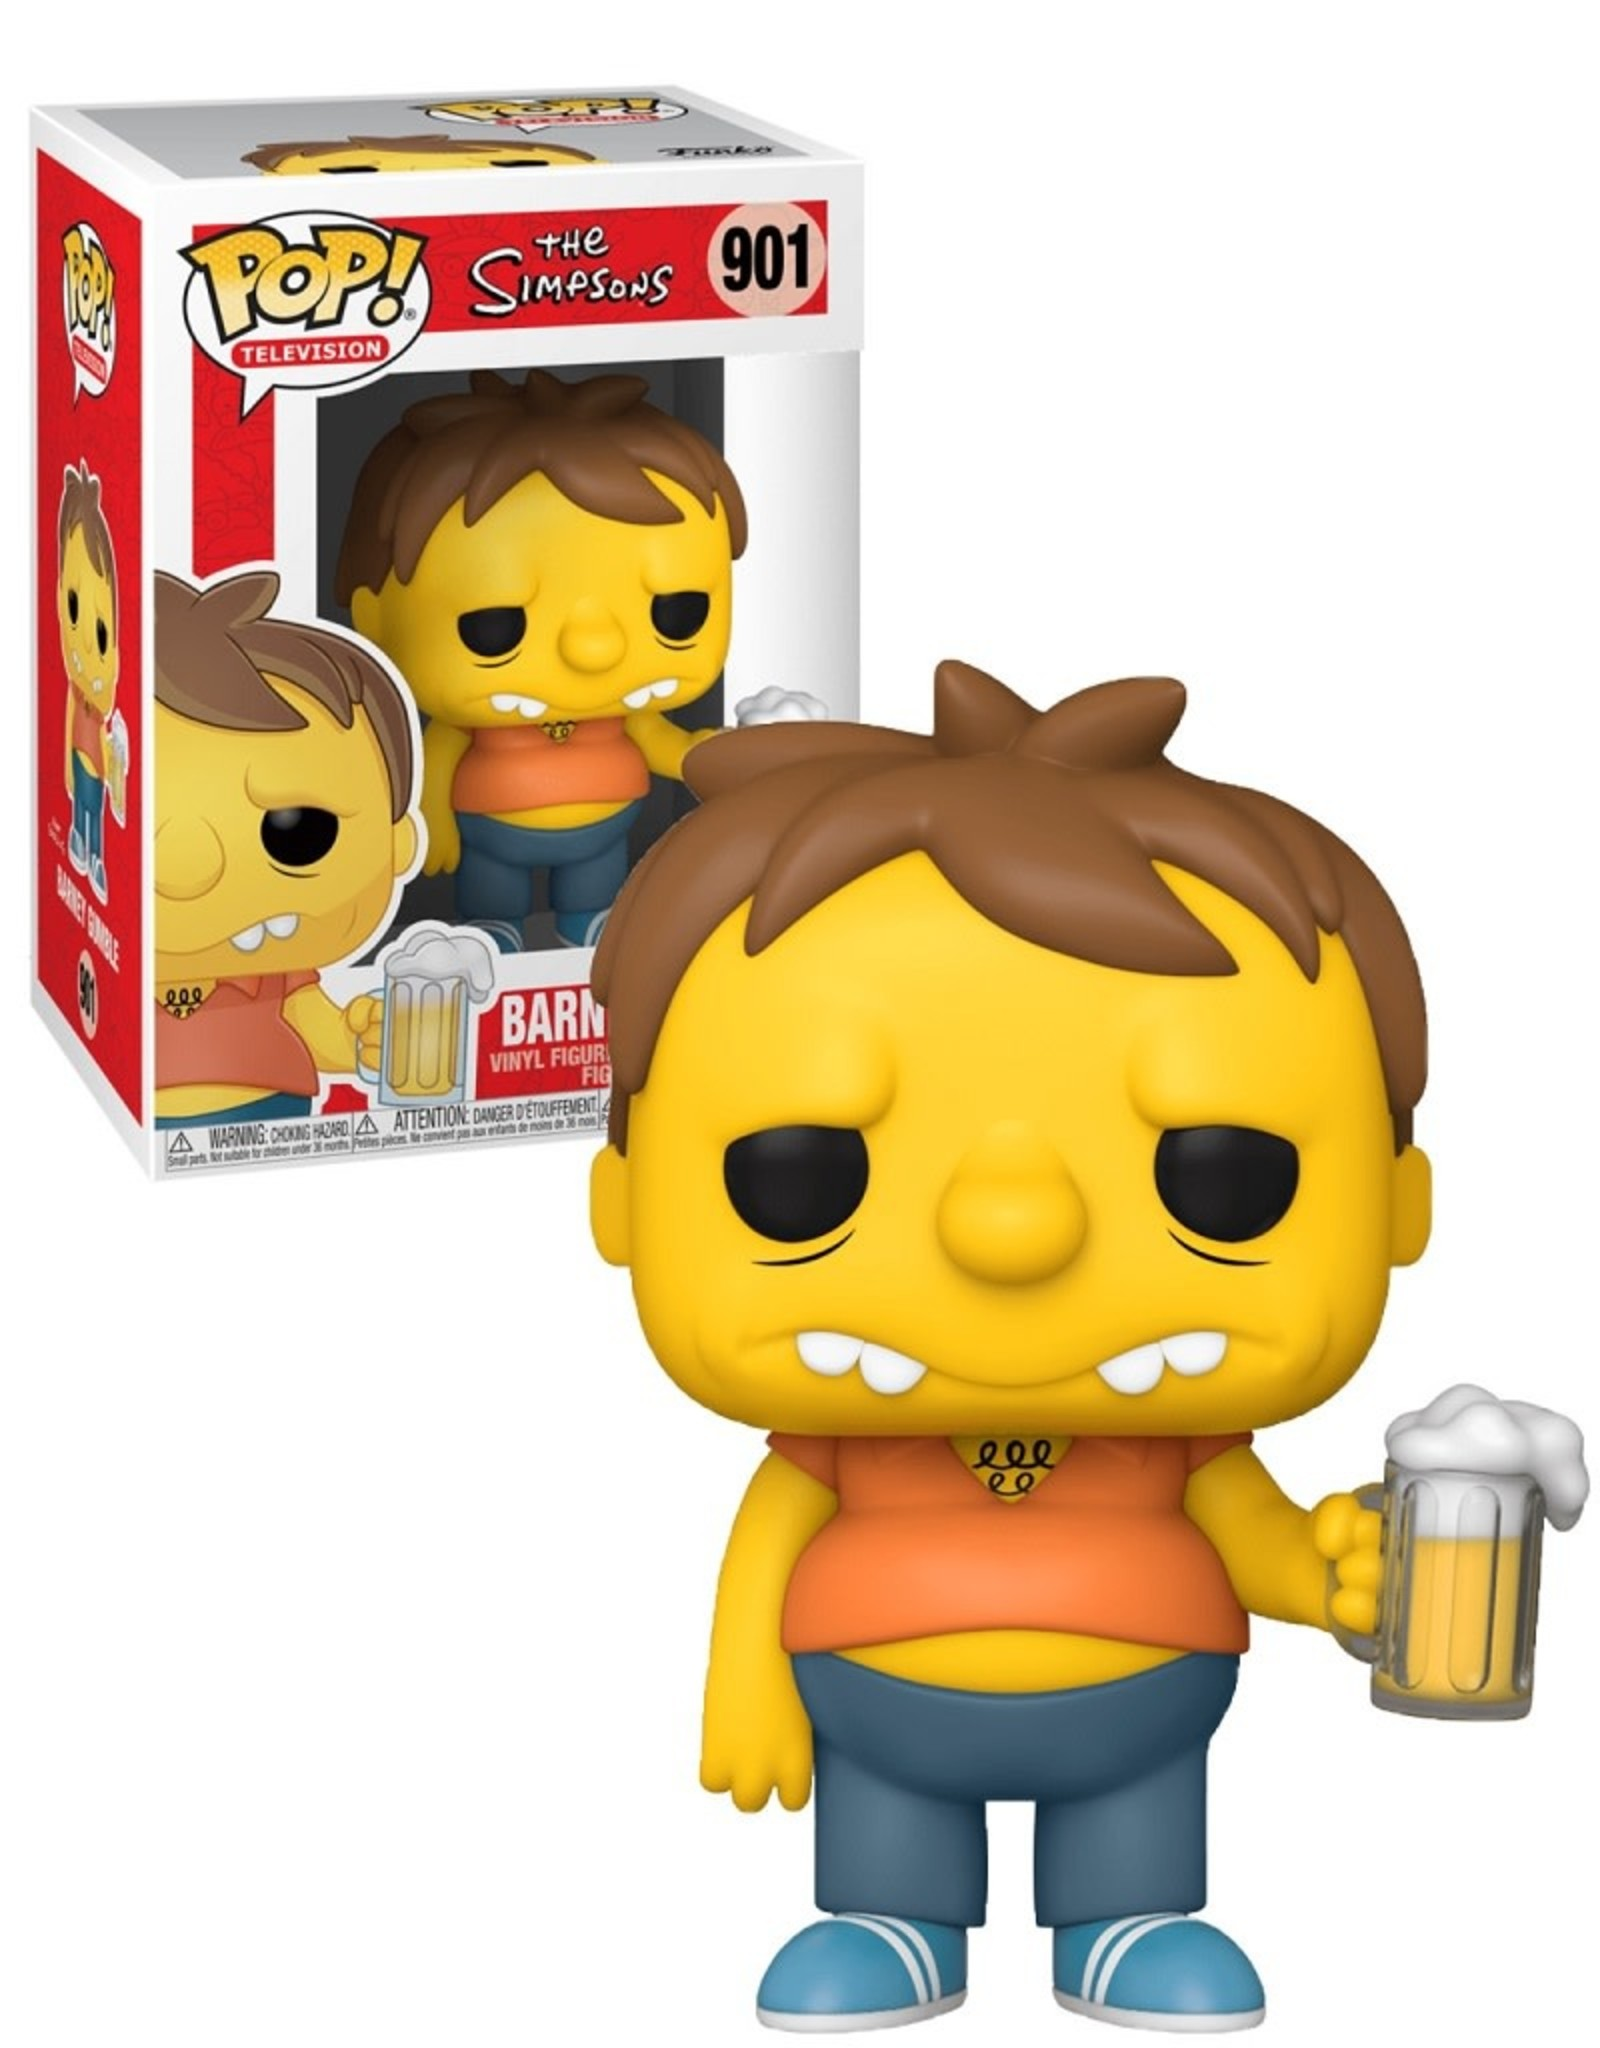 The Simpsons 901 ( Funko Pop ) Barney Gumble